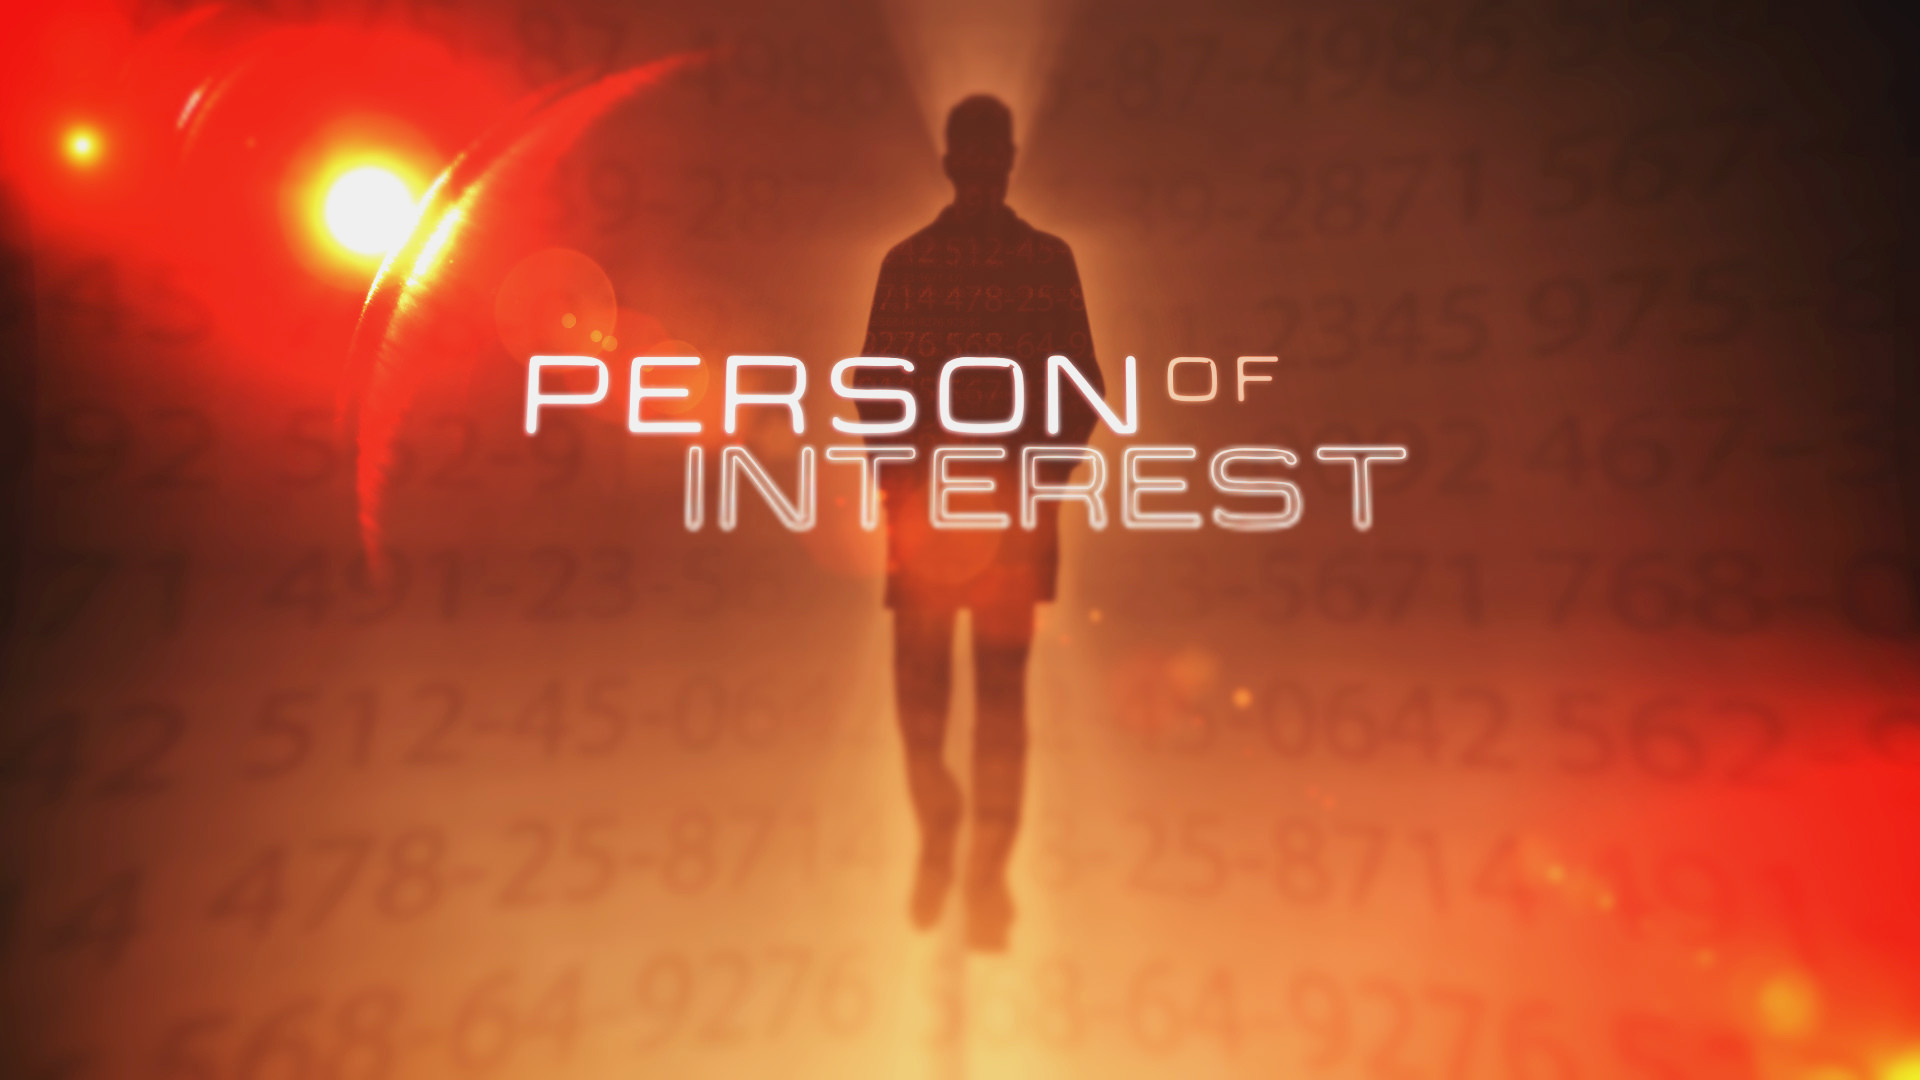 Person Of Interest Wallpaper 75 Images